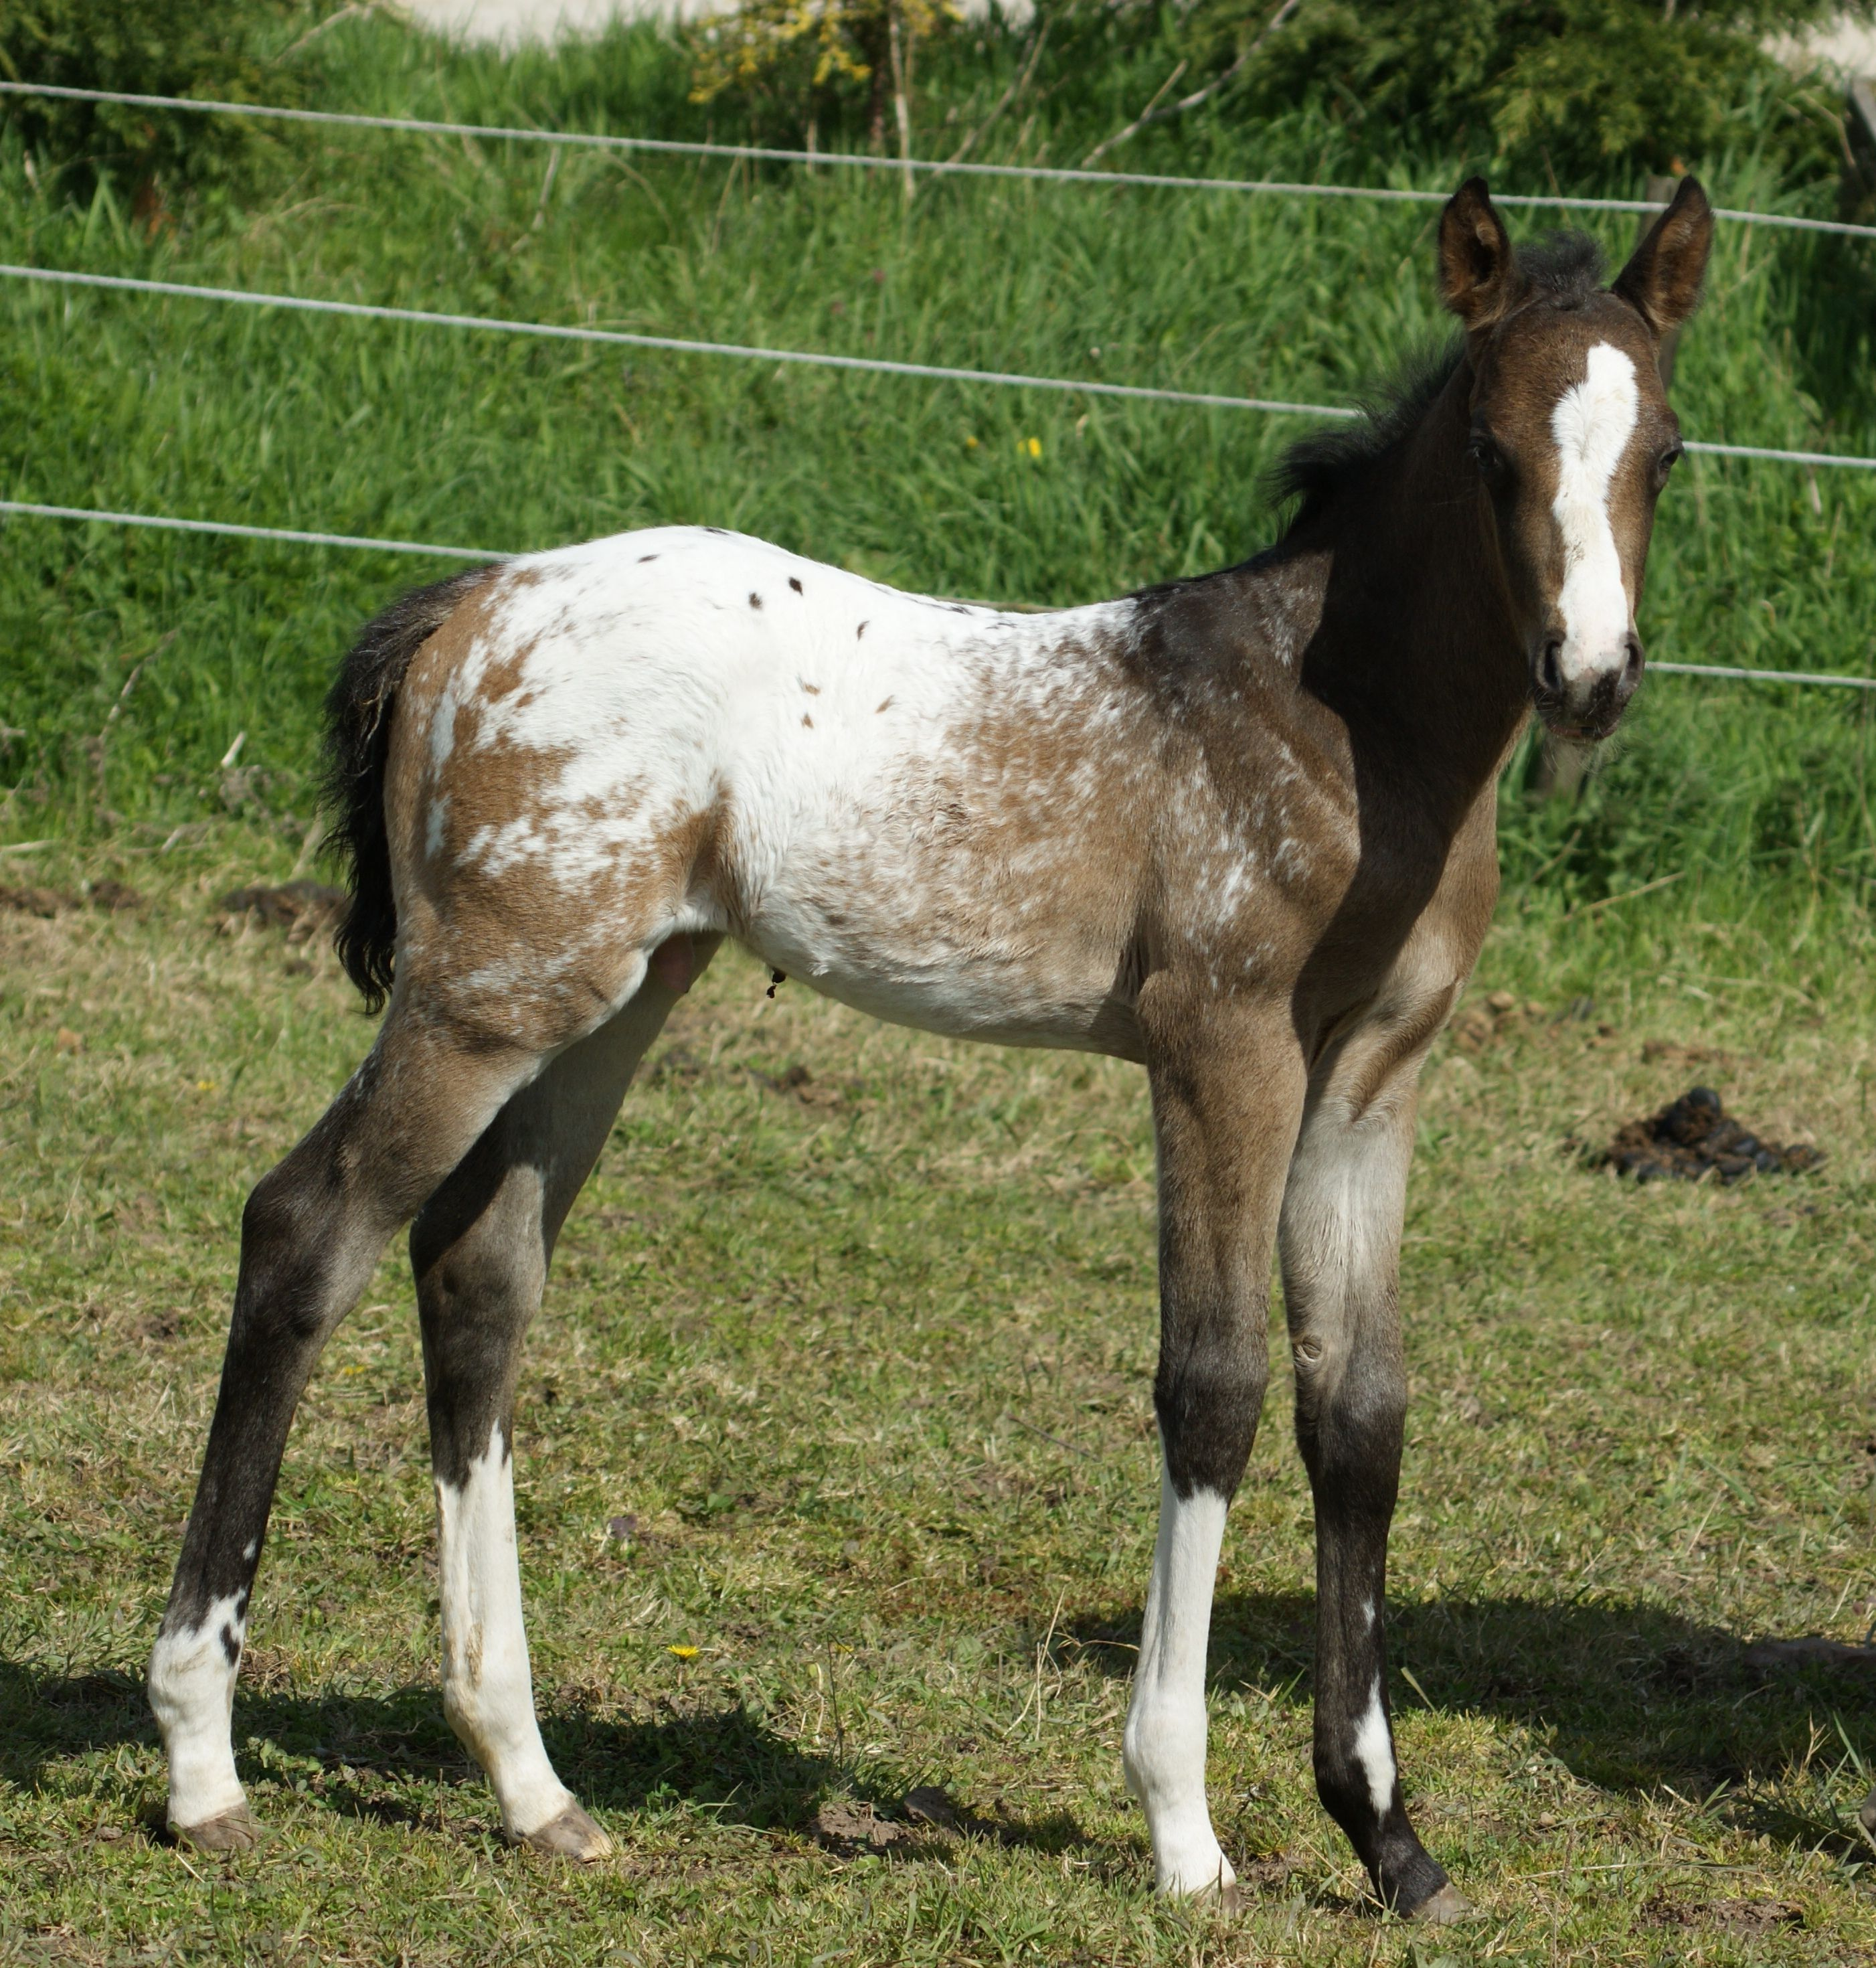 Appaloosa Horse Club (ApHC) UK Ltd Staroak Dun N' Dusted